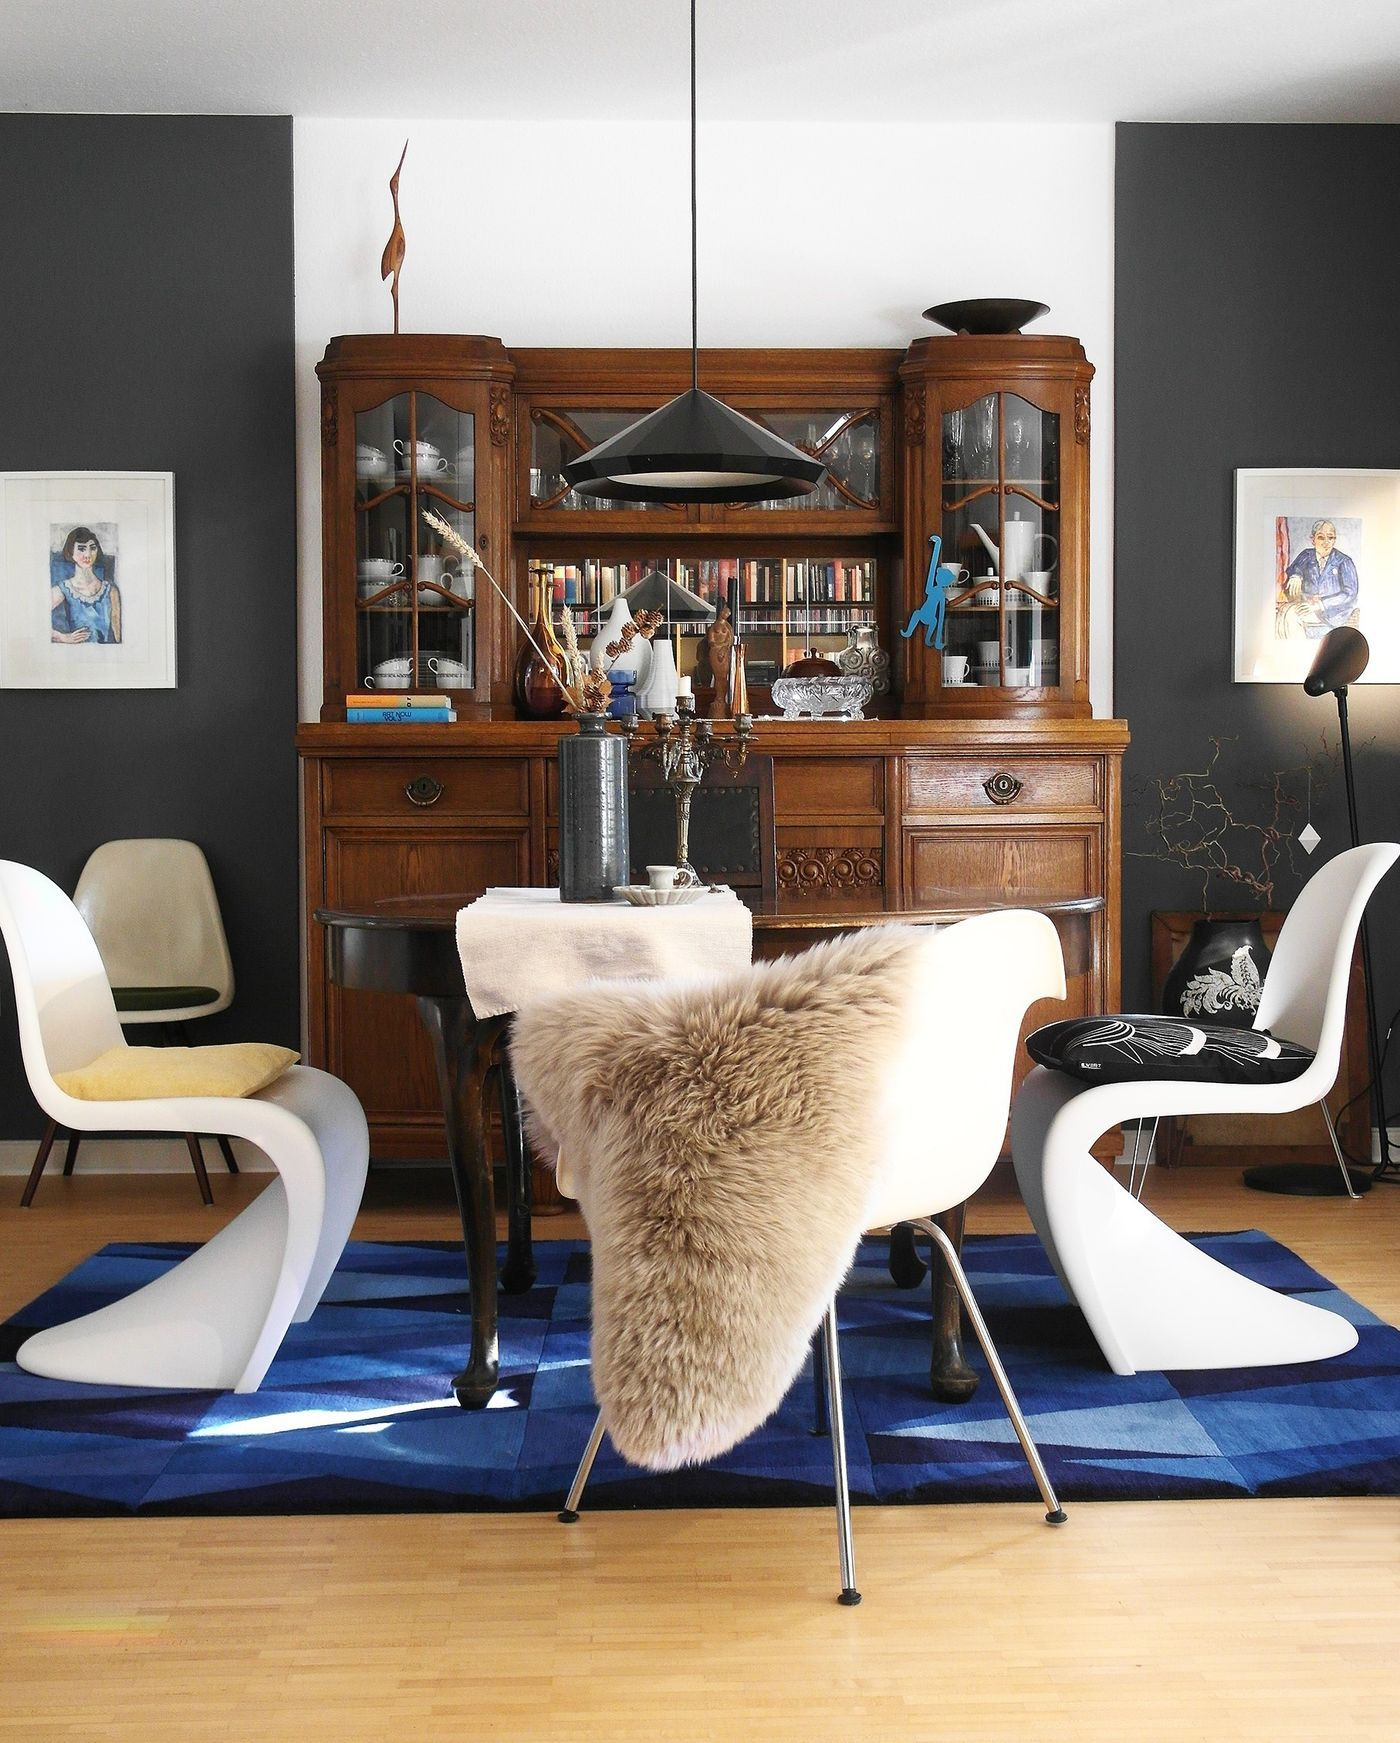 die sch nsten ideen f r teppiche von ikea. Black Bedroom Furniture Sets. Home Design Ideas